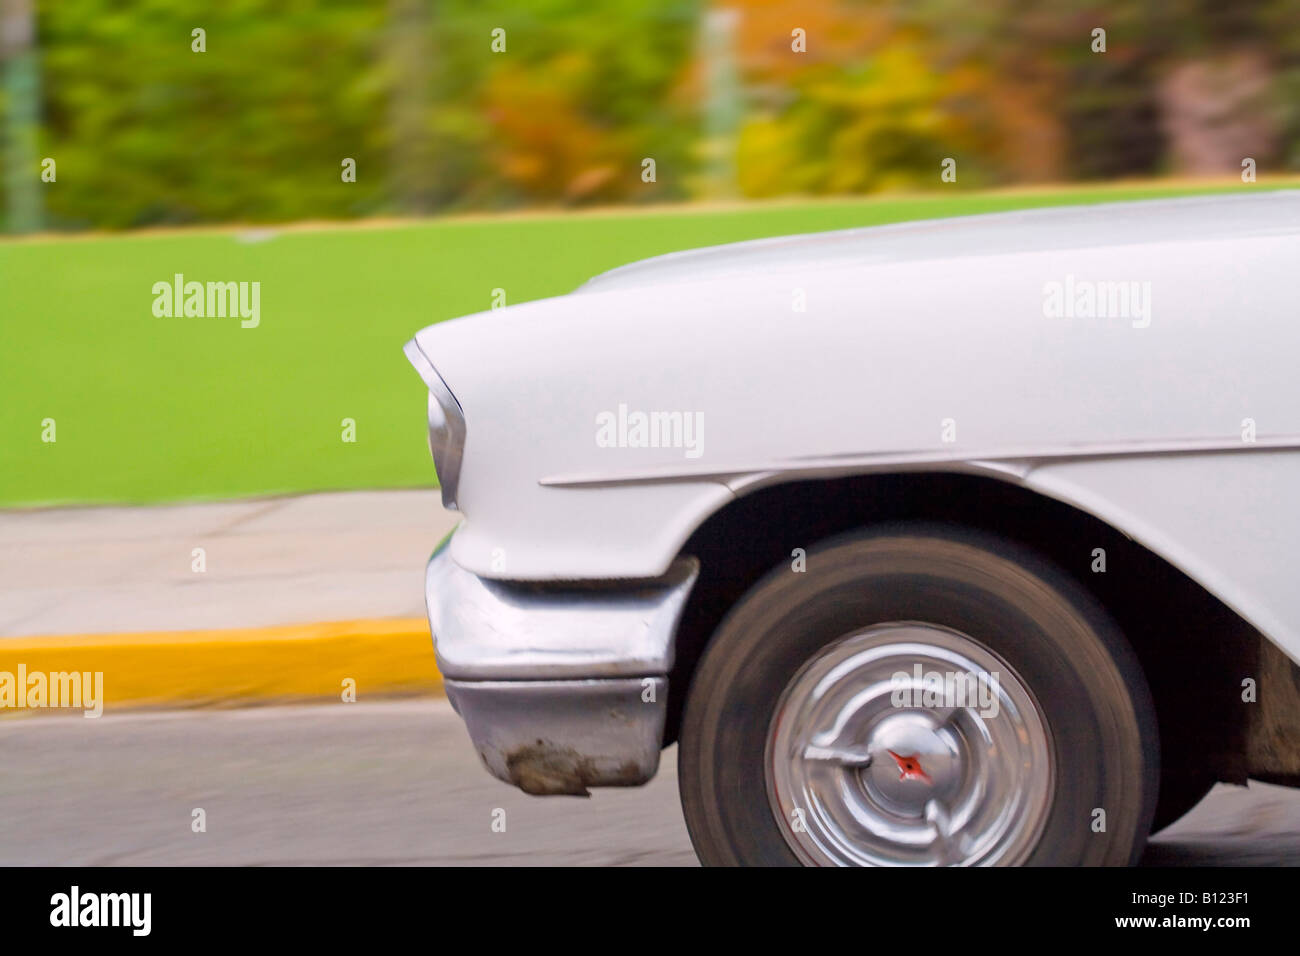 Old Cars Fast Moving Motin Blur Stock Photo 17871701 Alamy